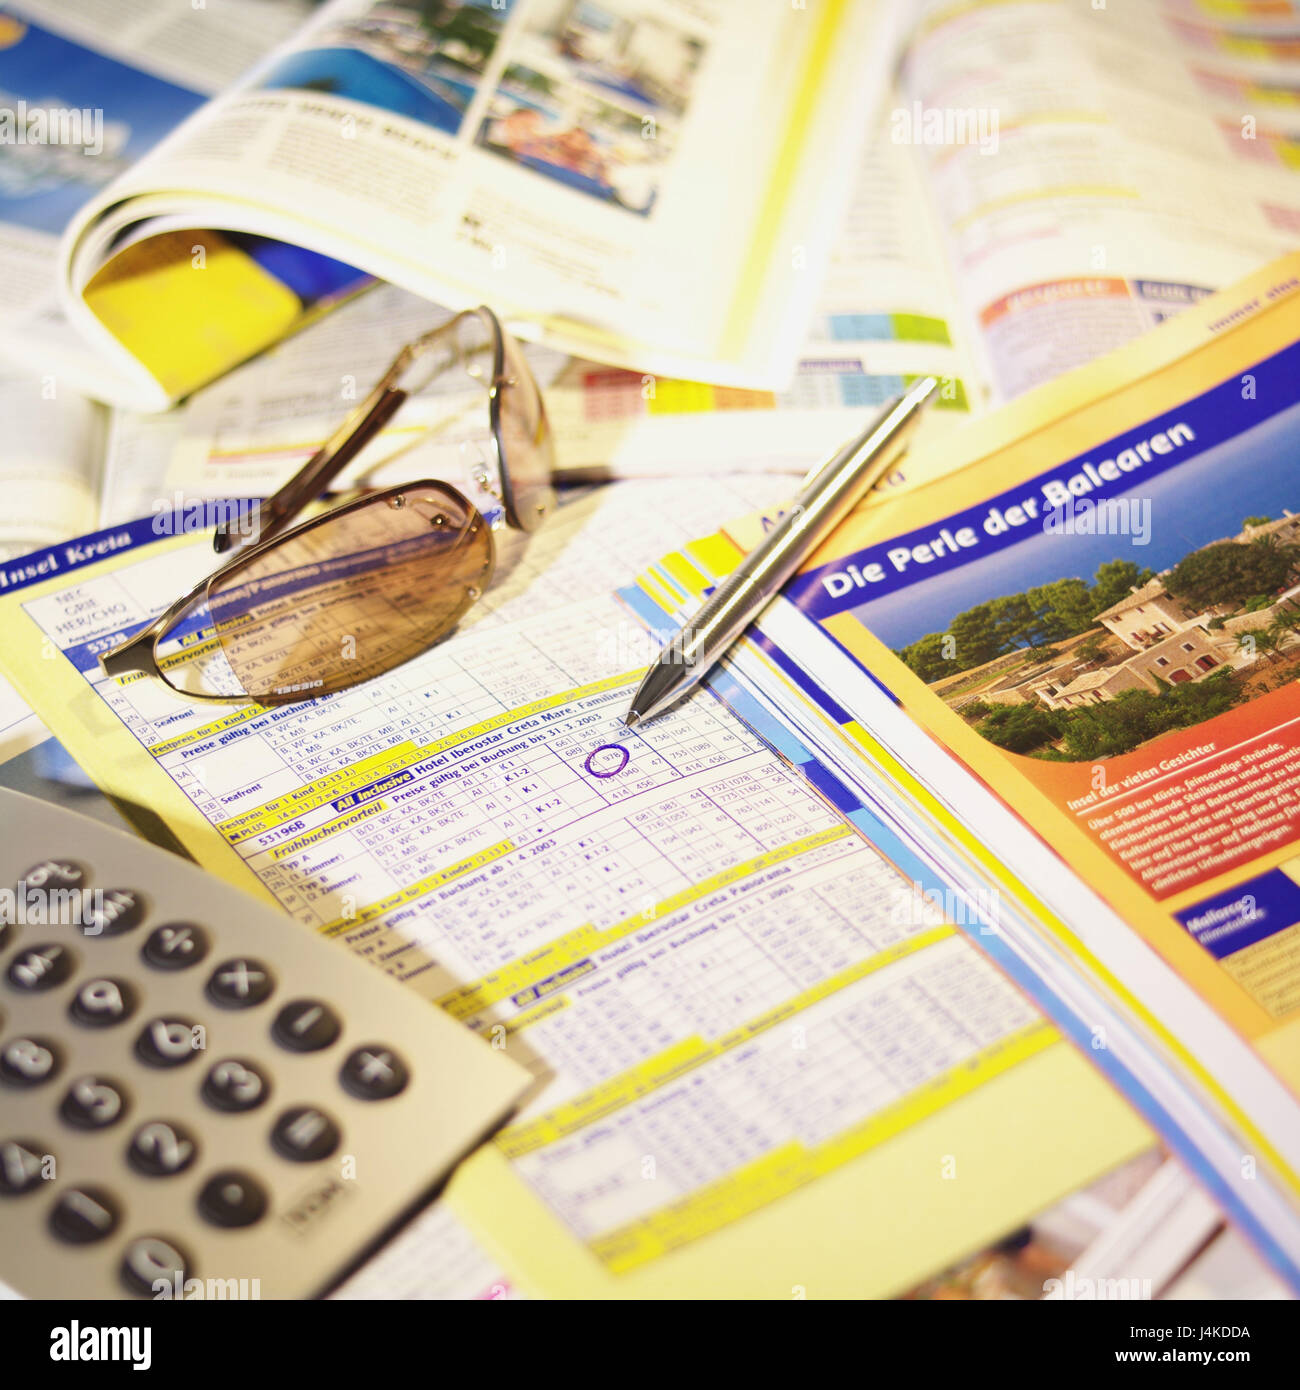 rice catalogues sunglasses electronic calculator detail icon